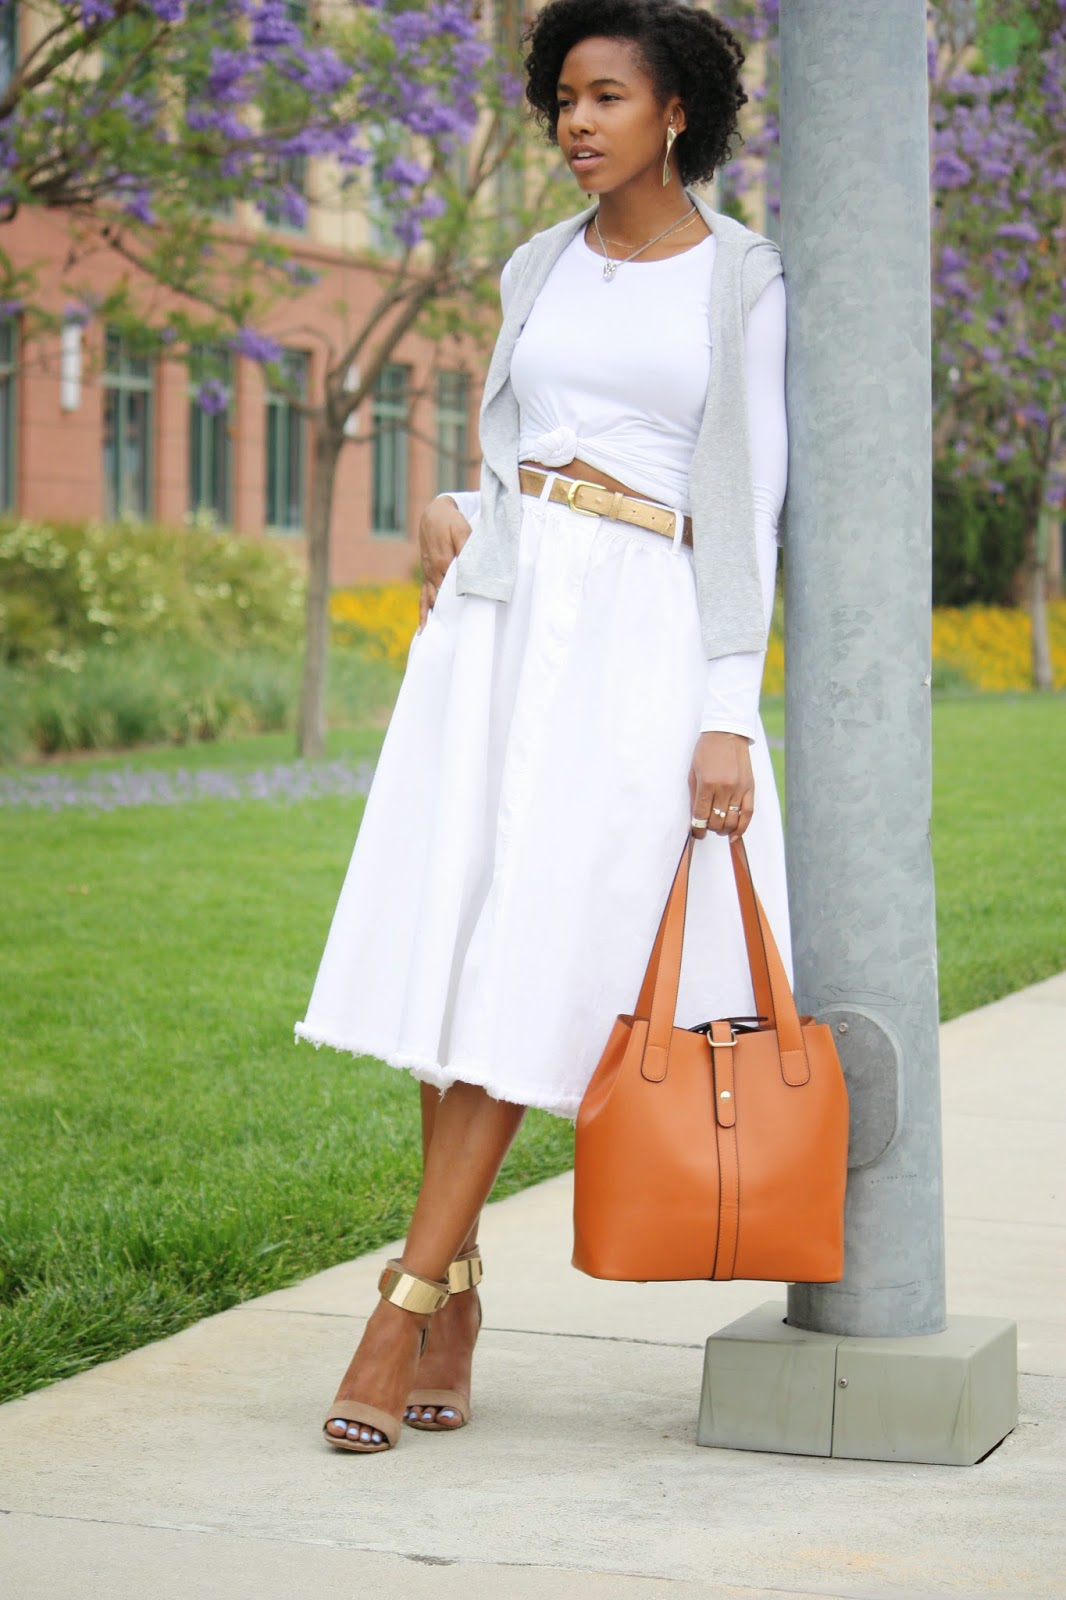 Wearing, Cynthia Rowley long sleeve shirt, Felina long sleeve shirt, H&M white denim skirt, Aldo heeled sandals, Ms Littles Bag leather multifunctional bucket bag